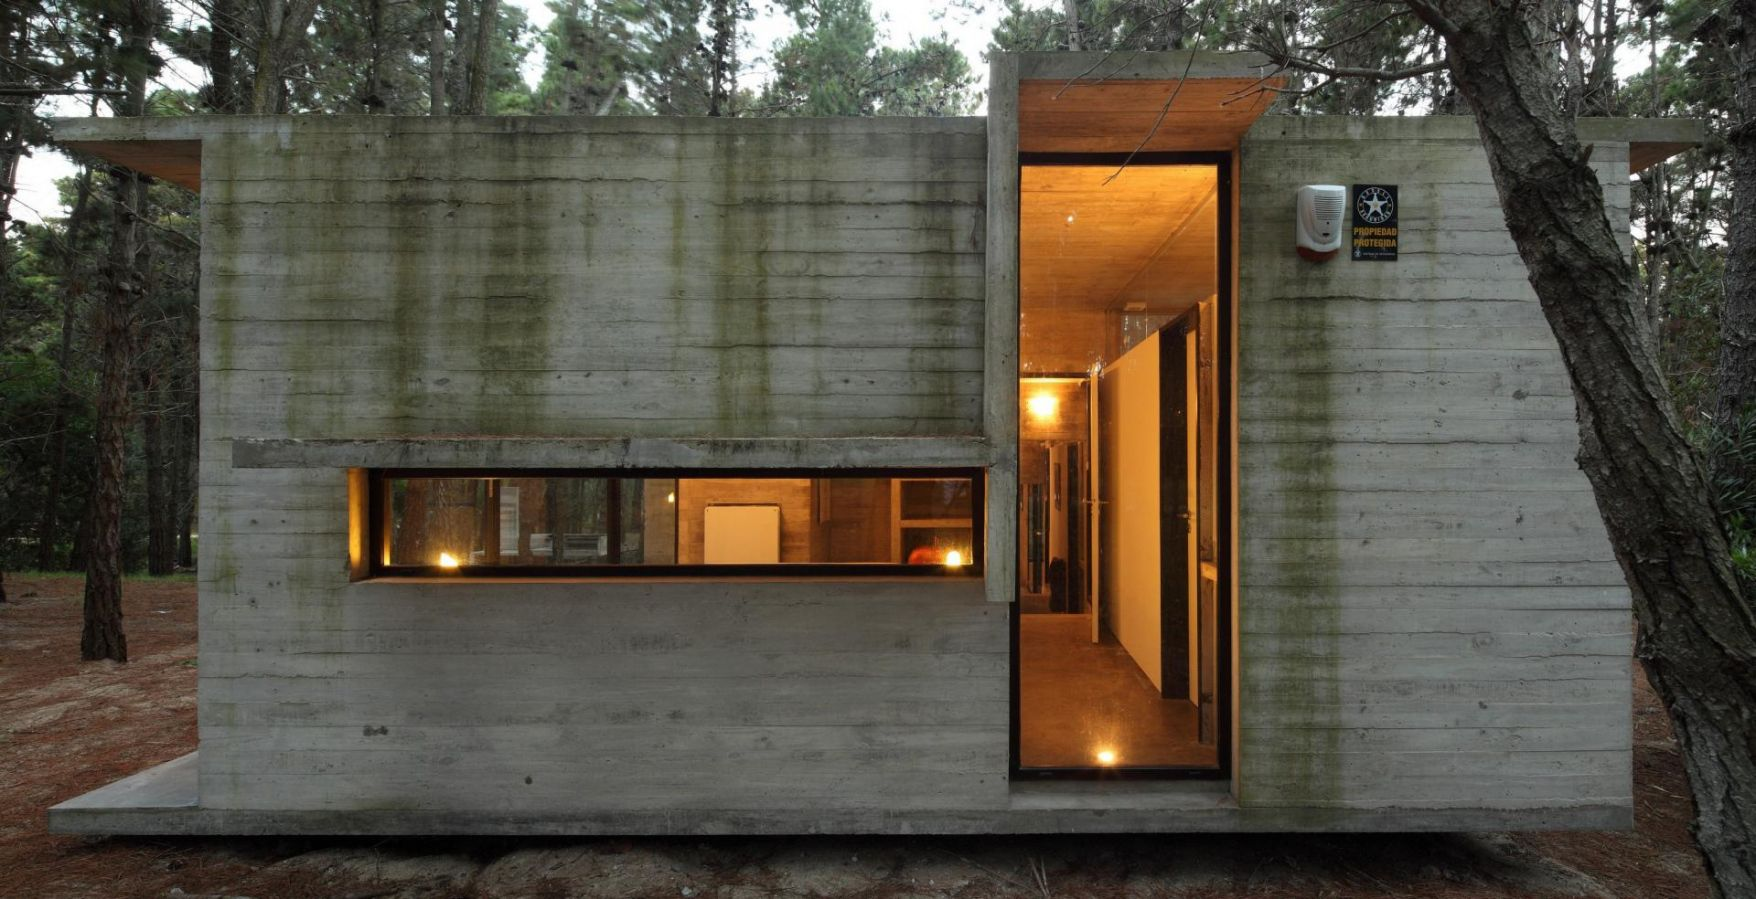 Beautiful Small Concrete Home Plans Check More At  Http://www.jnnsysy.com/small Concrete Home Plans/ Awesome Design